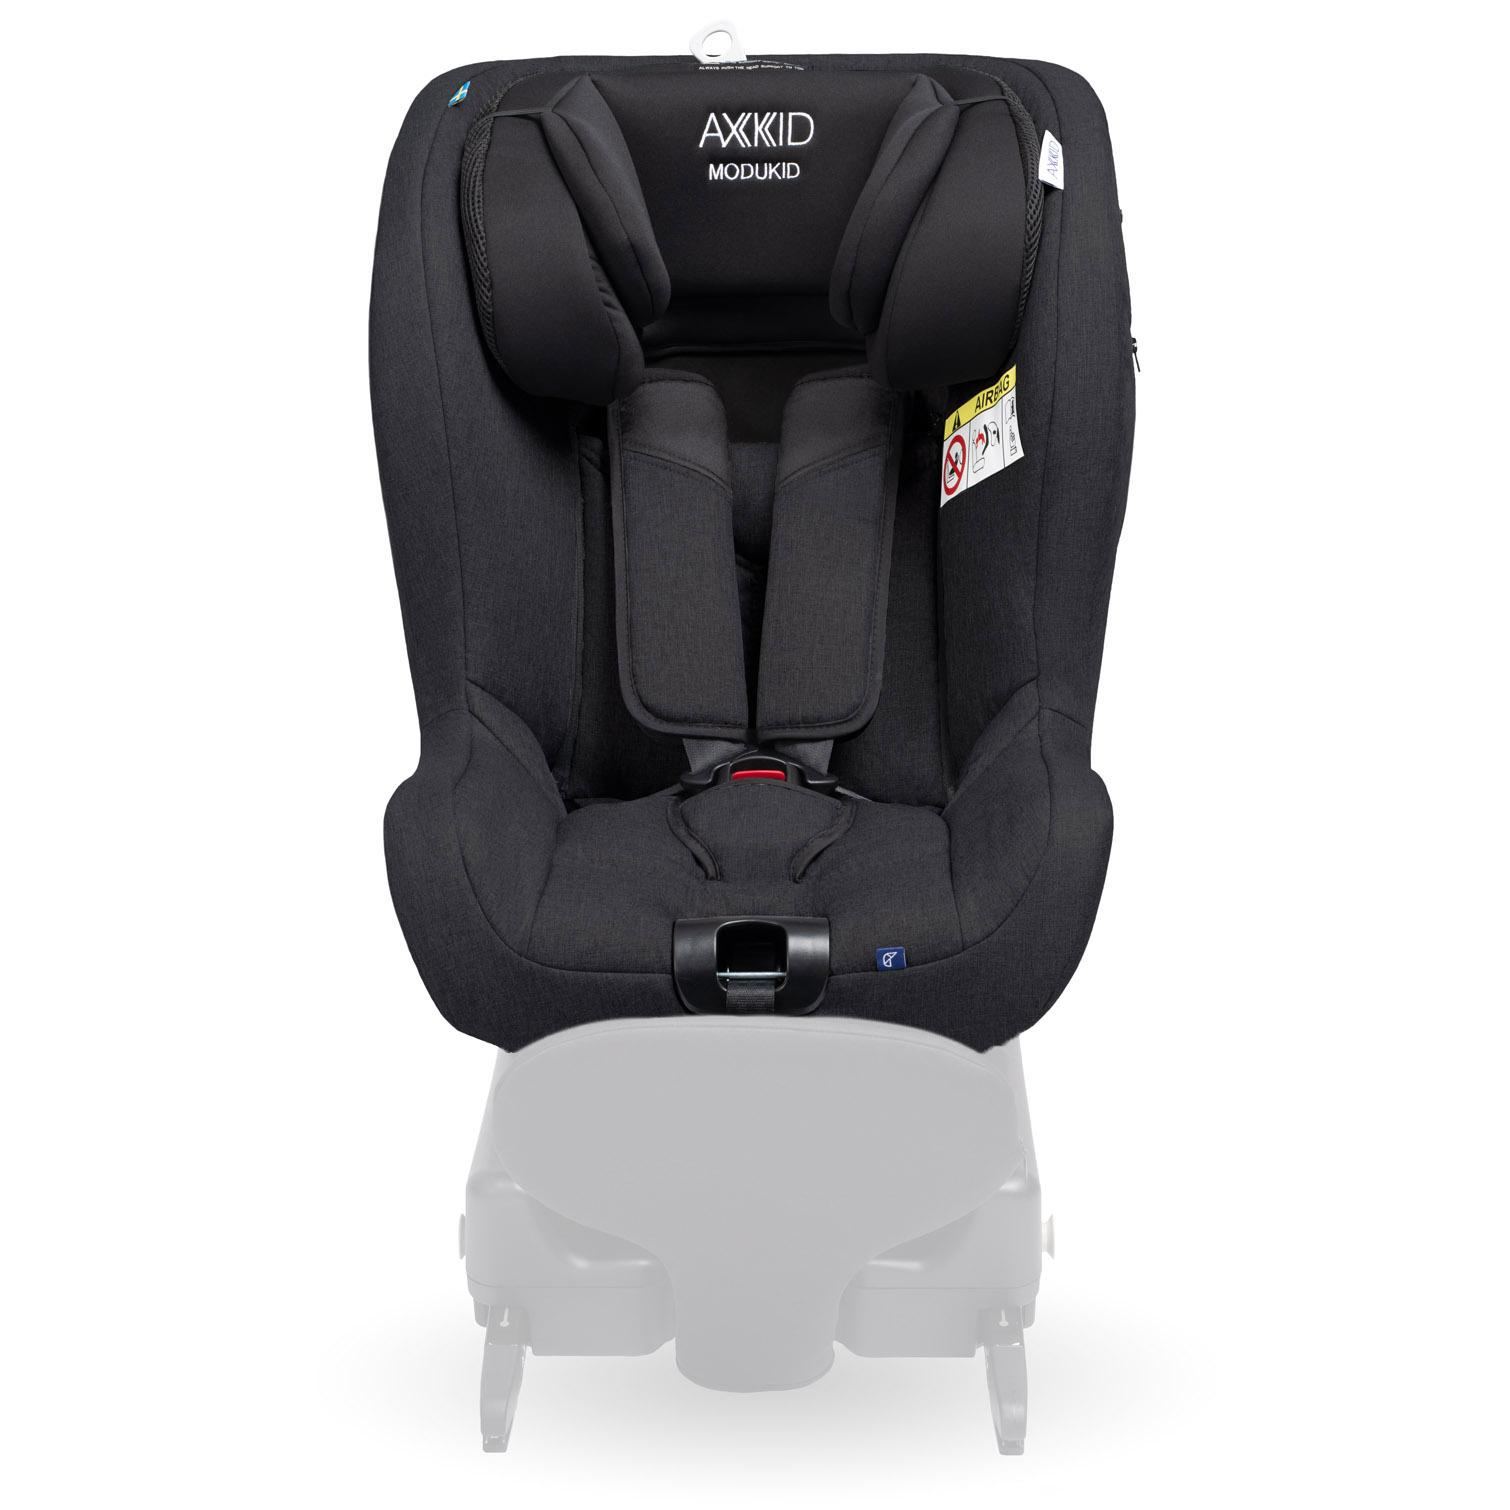 Axkid Modukid Car Seat - Black